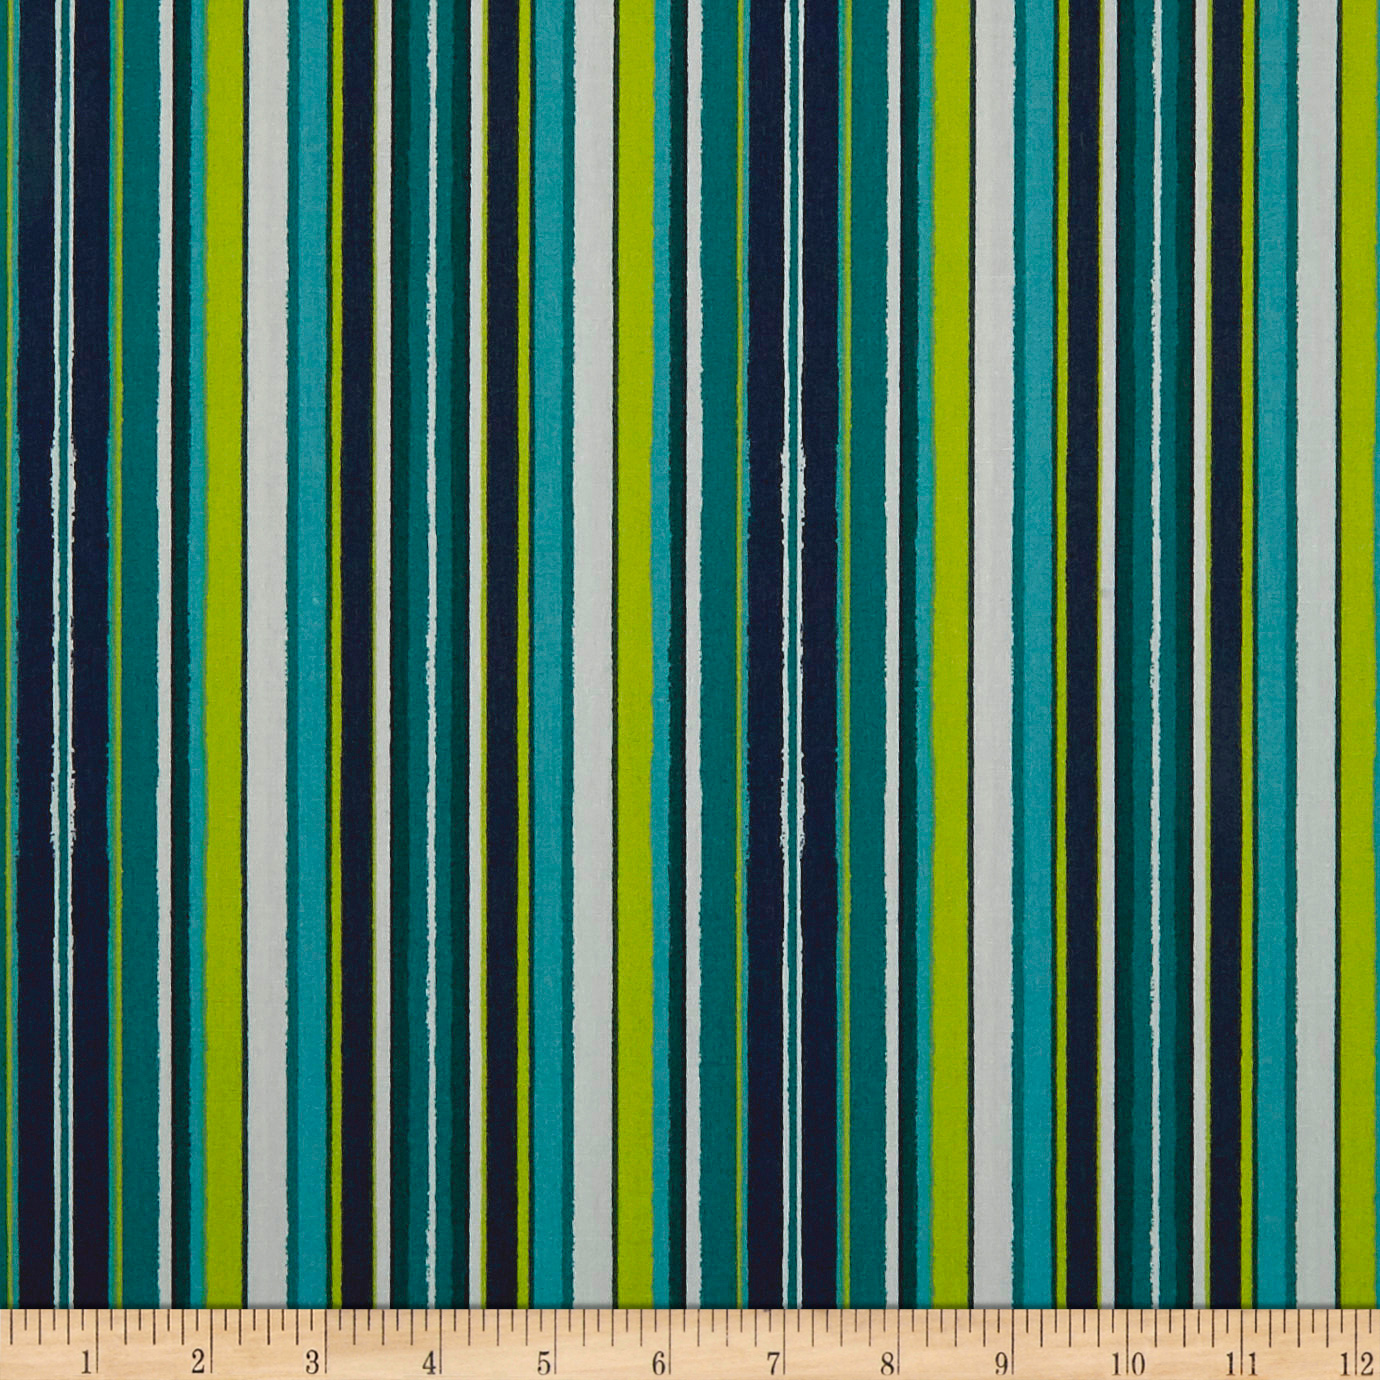 Art Gallery Loved To Pieces Striped Flow Marine Teal Fabric